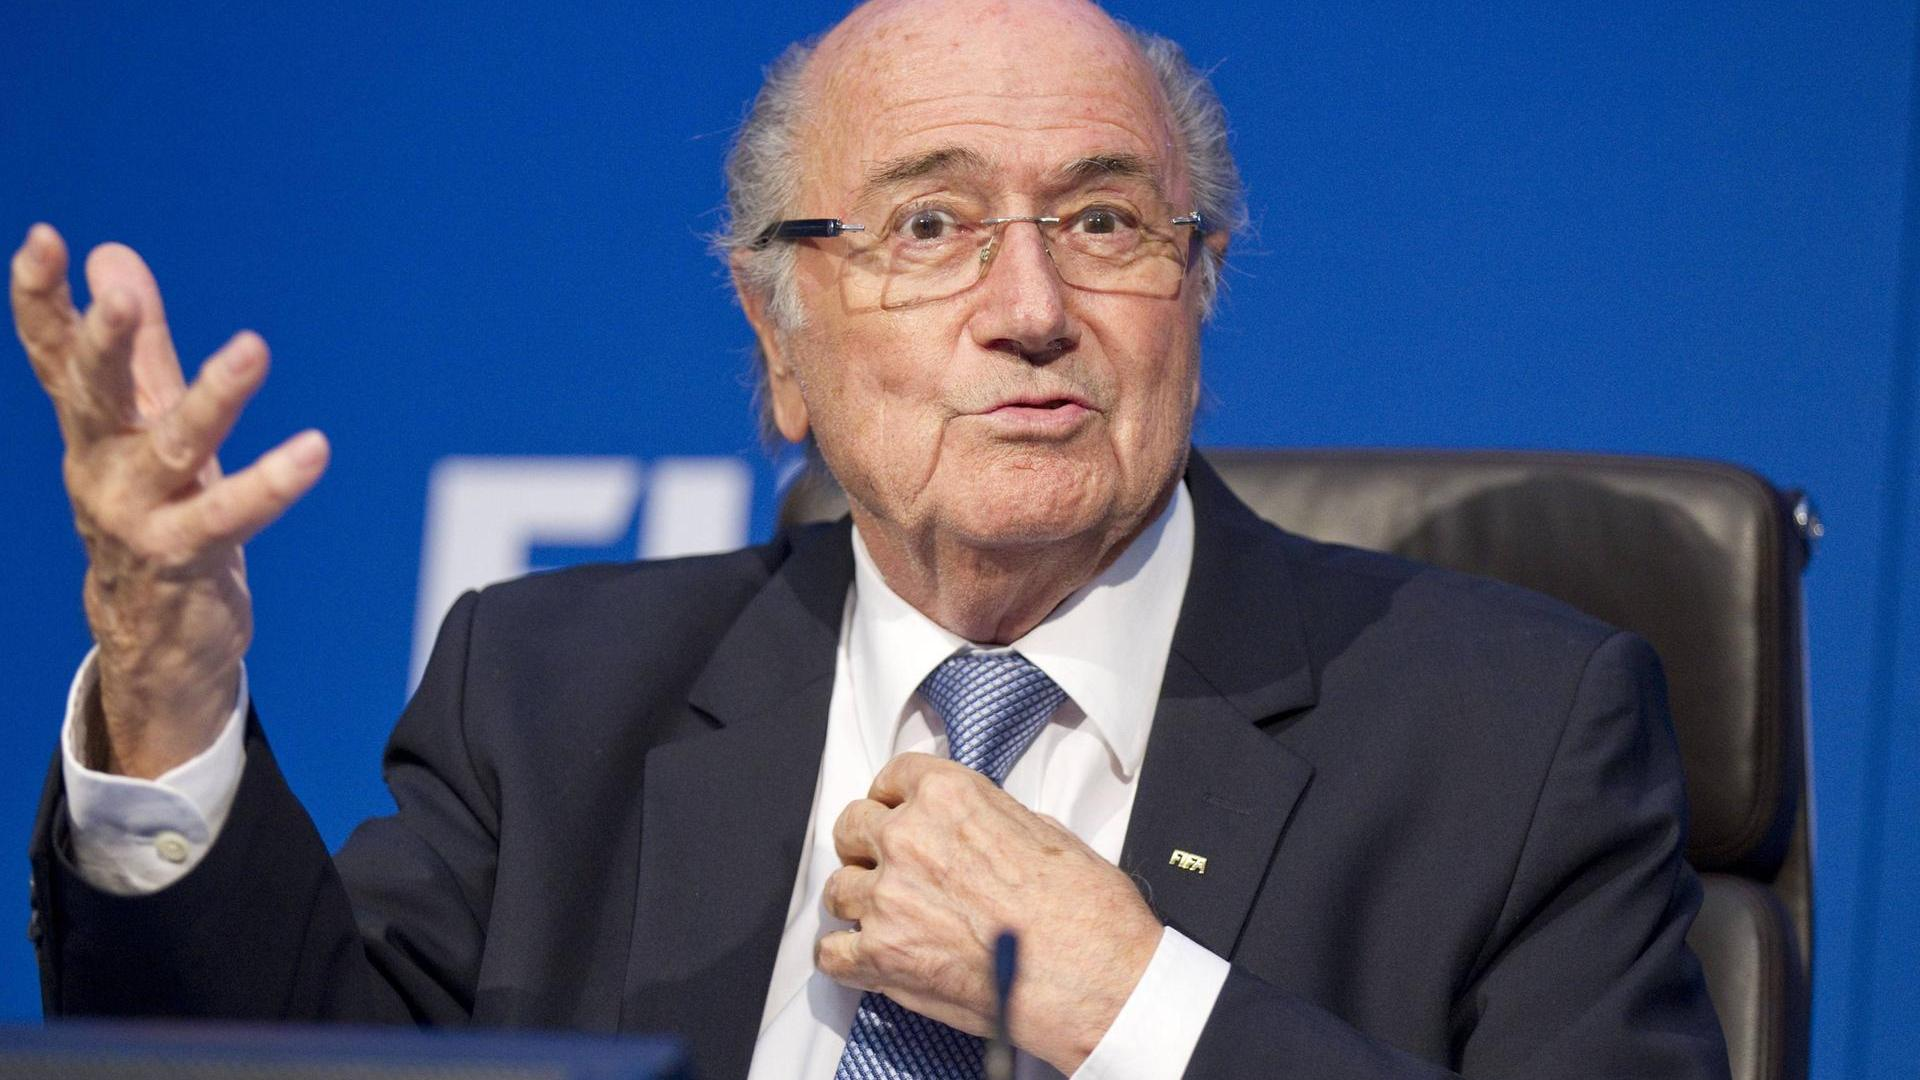 sepp blatter so manipulierte die uefa ihre auslosungen. Black Bedroom Furniture Sets. Home Design Ideas